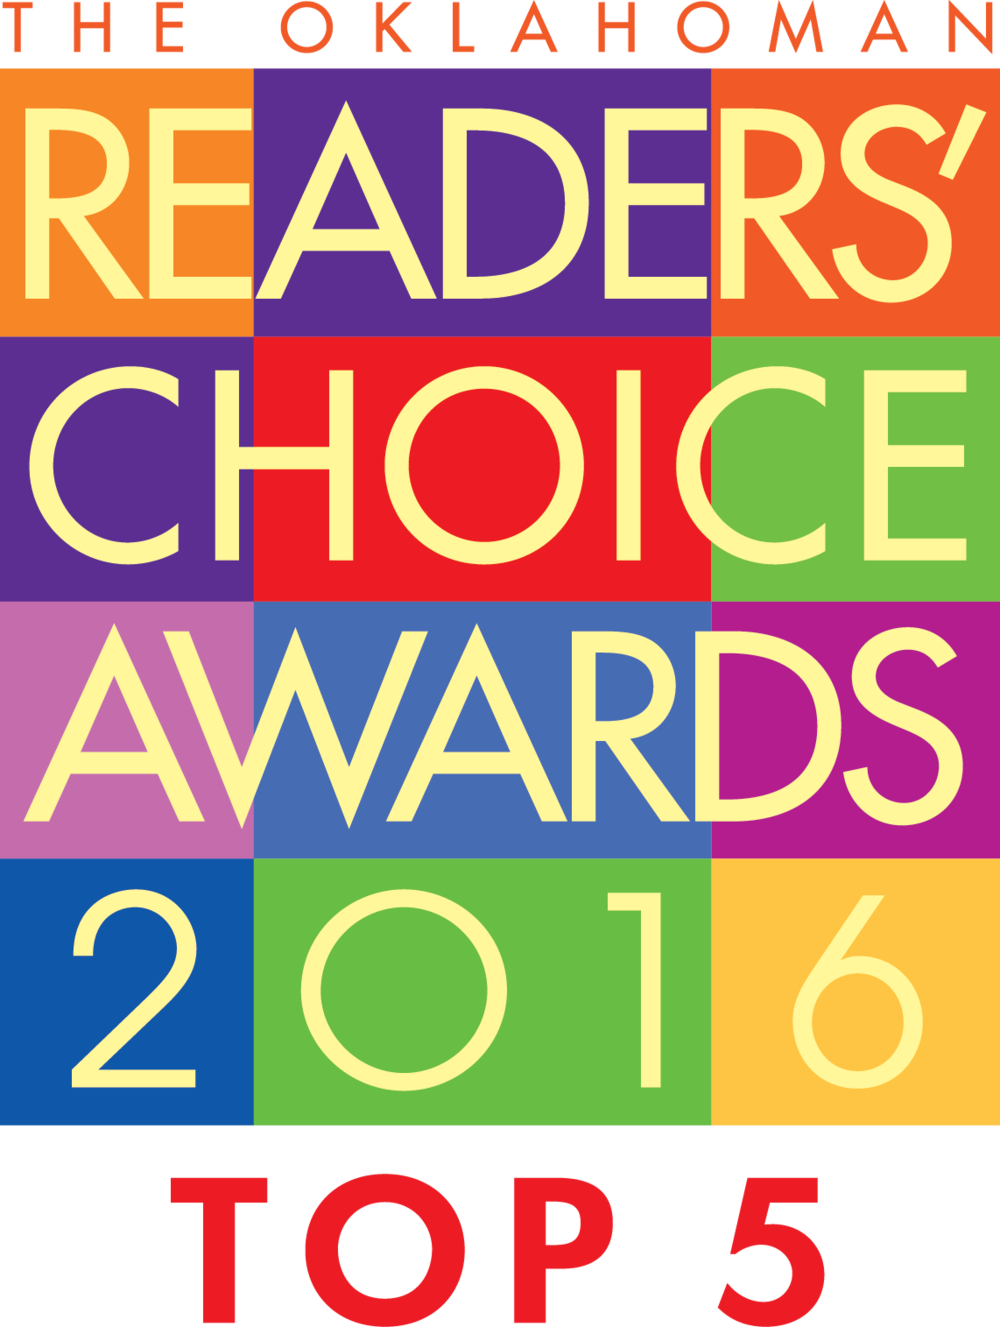 4C_VECT_READERS_CHOICE_TOP5_2016 (1).png